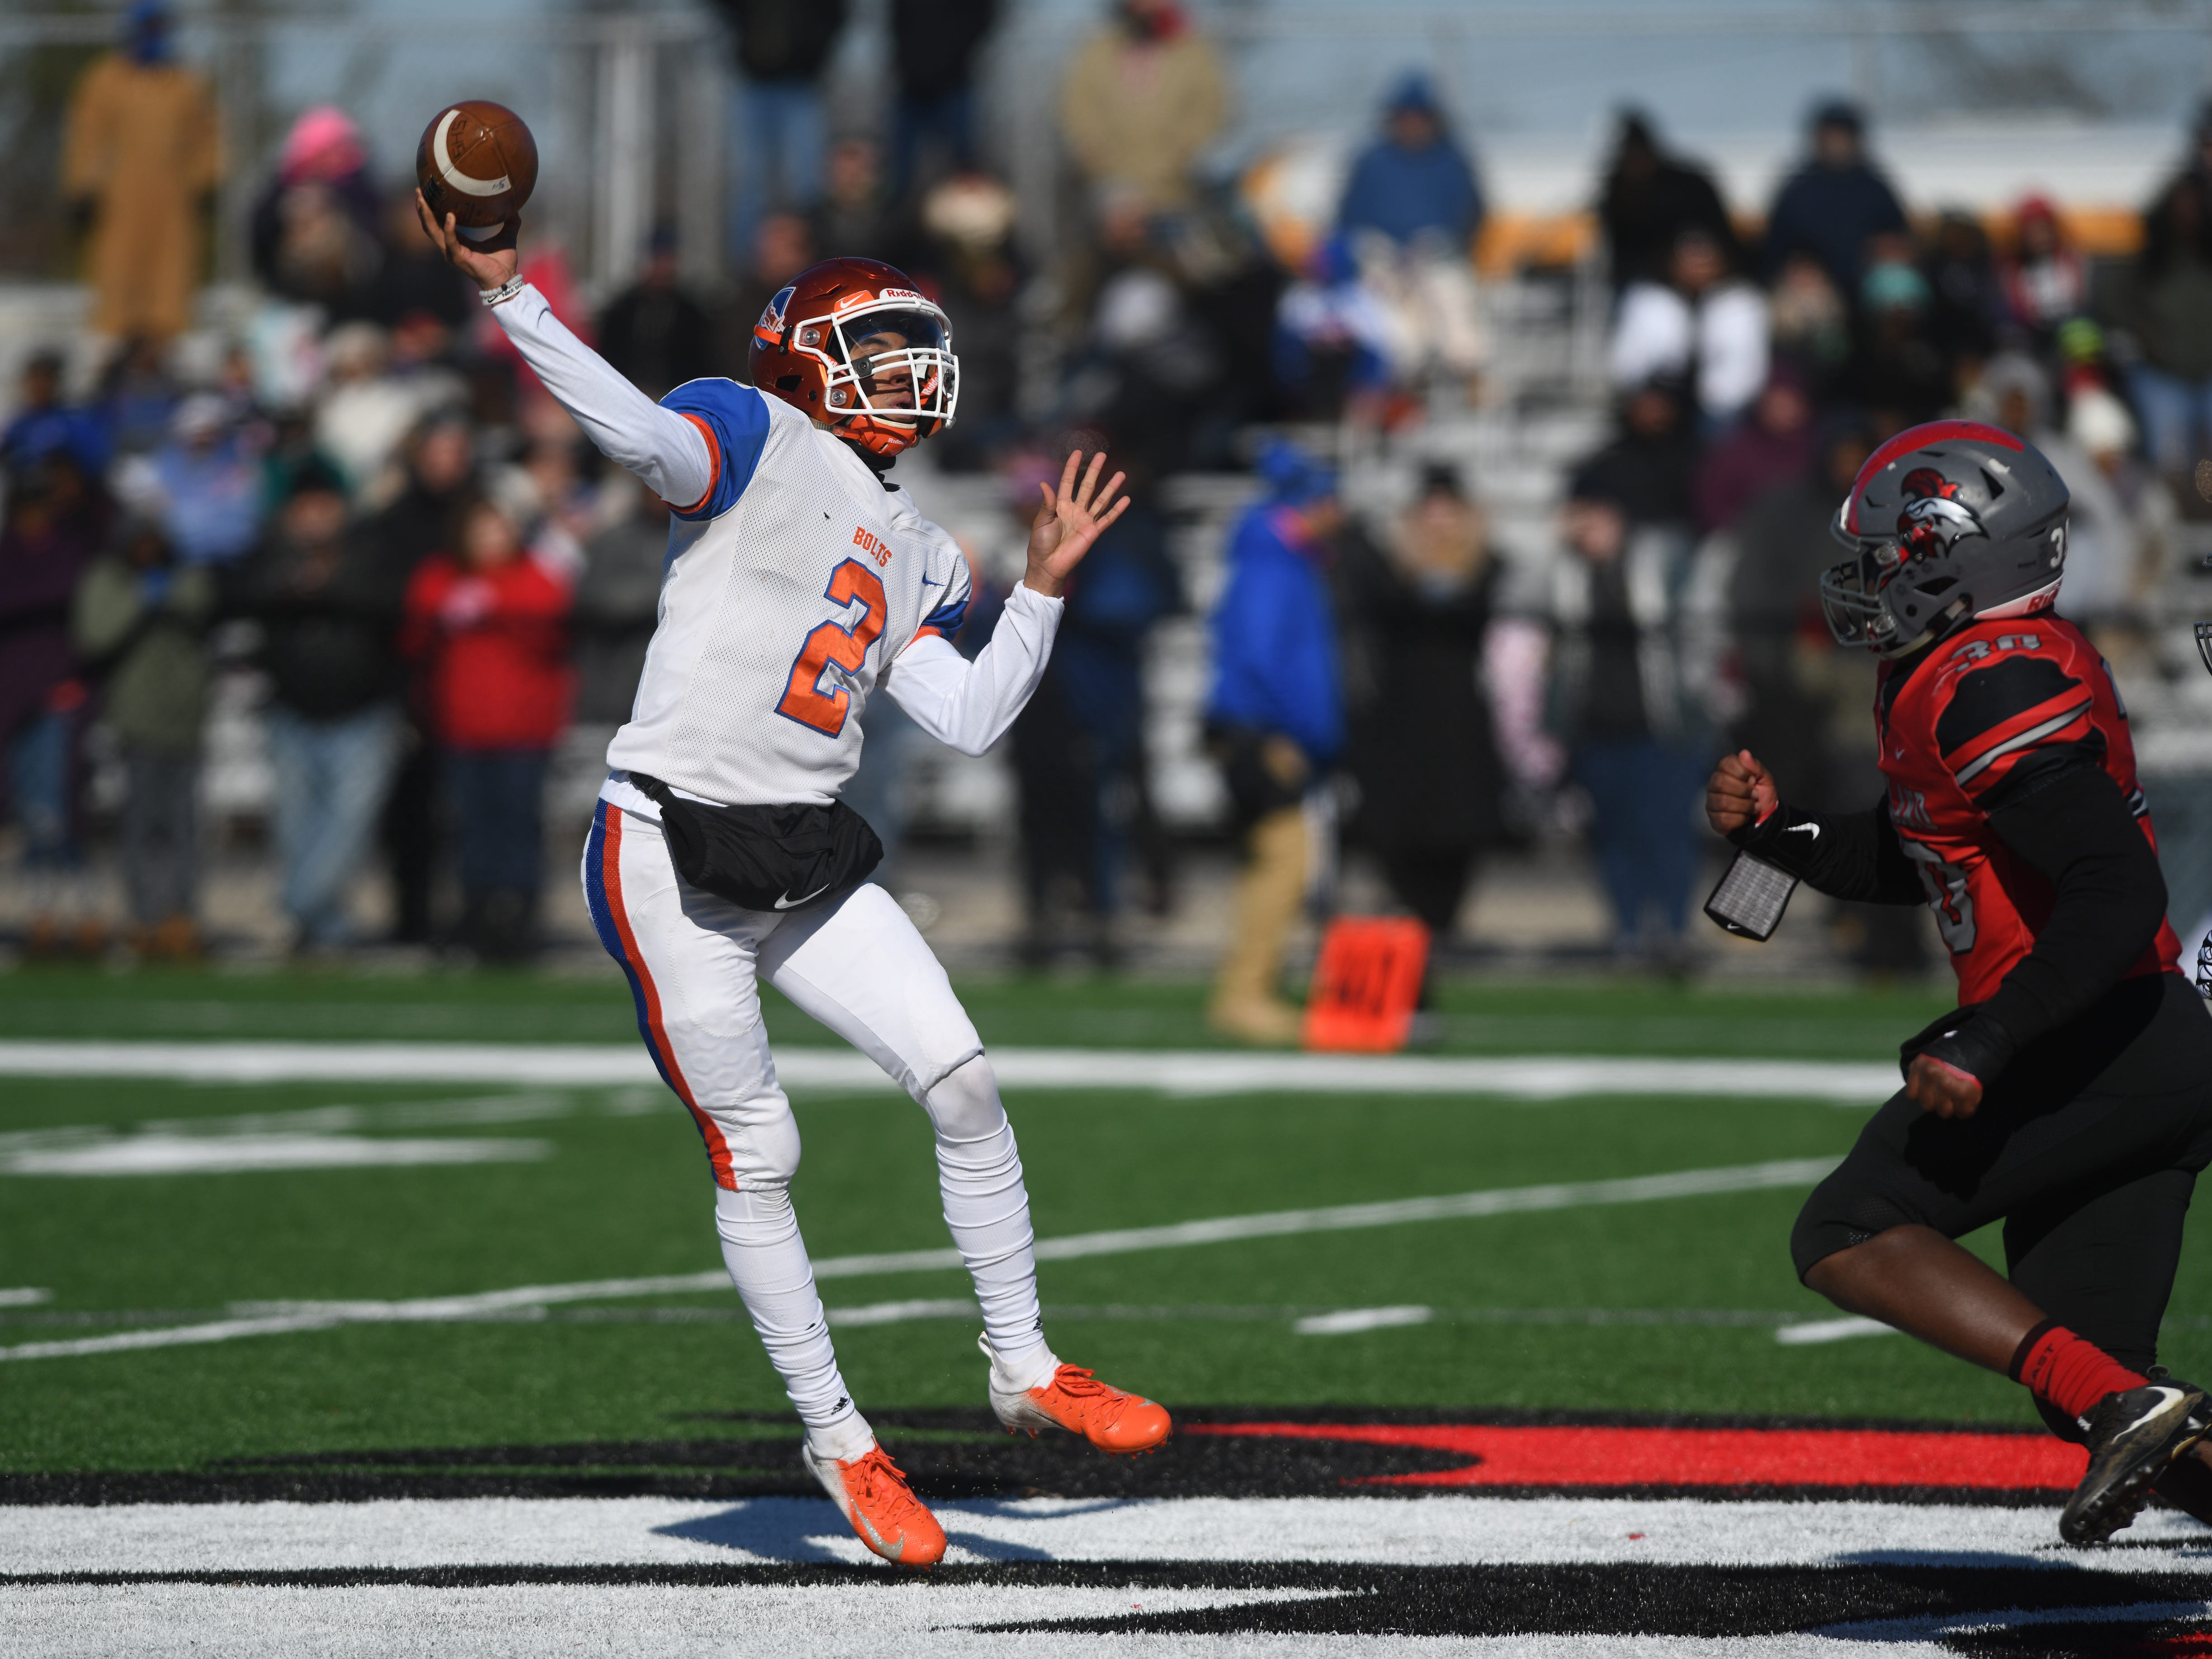 Millville's QB Eddie Jamison throws downfield against Vineland at Gittone Stadium on Thanksgiving Day. The Fighting Clan topped the Thunderbolts, 26-6 on Thursday, November 22, 2018.